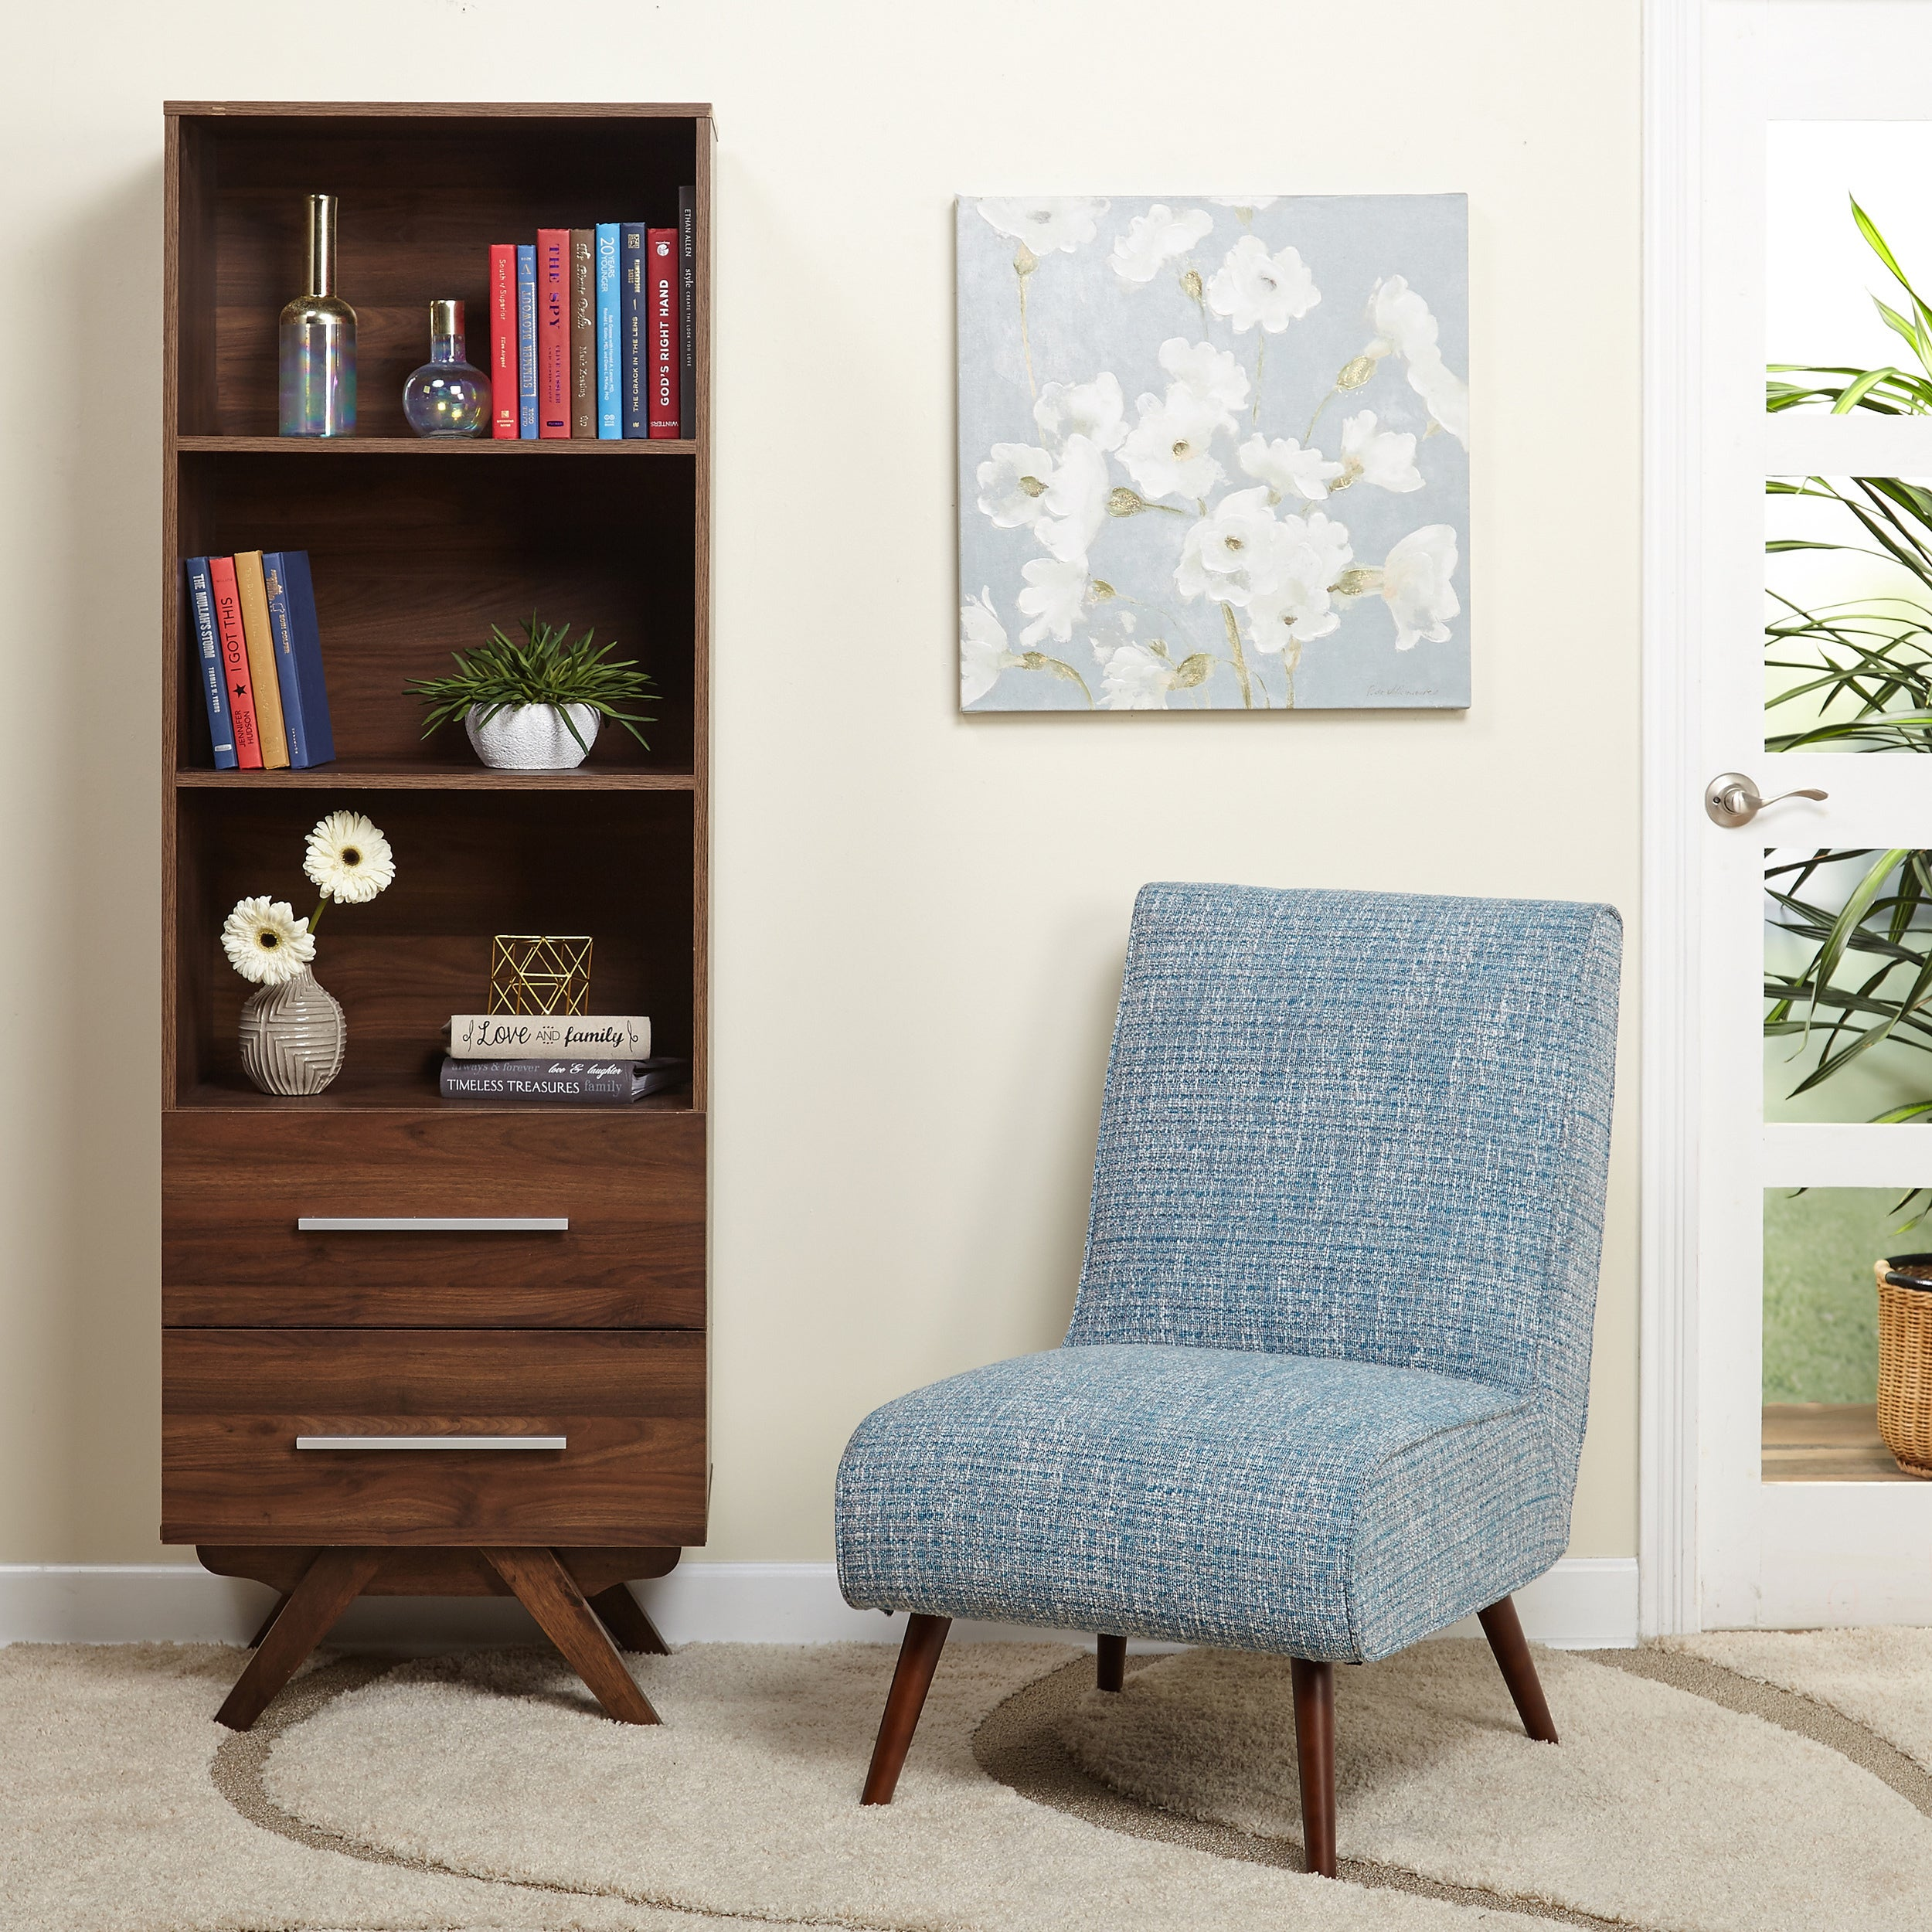 Living Room Drawers. Simple Living Ashfield Mid Century Walnut finish Bookshelf Tower with Two  2 drawers Free Shipping Today Overstock com 20813196